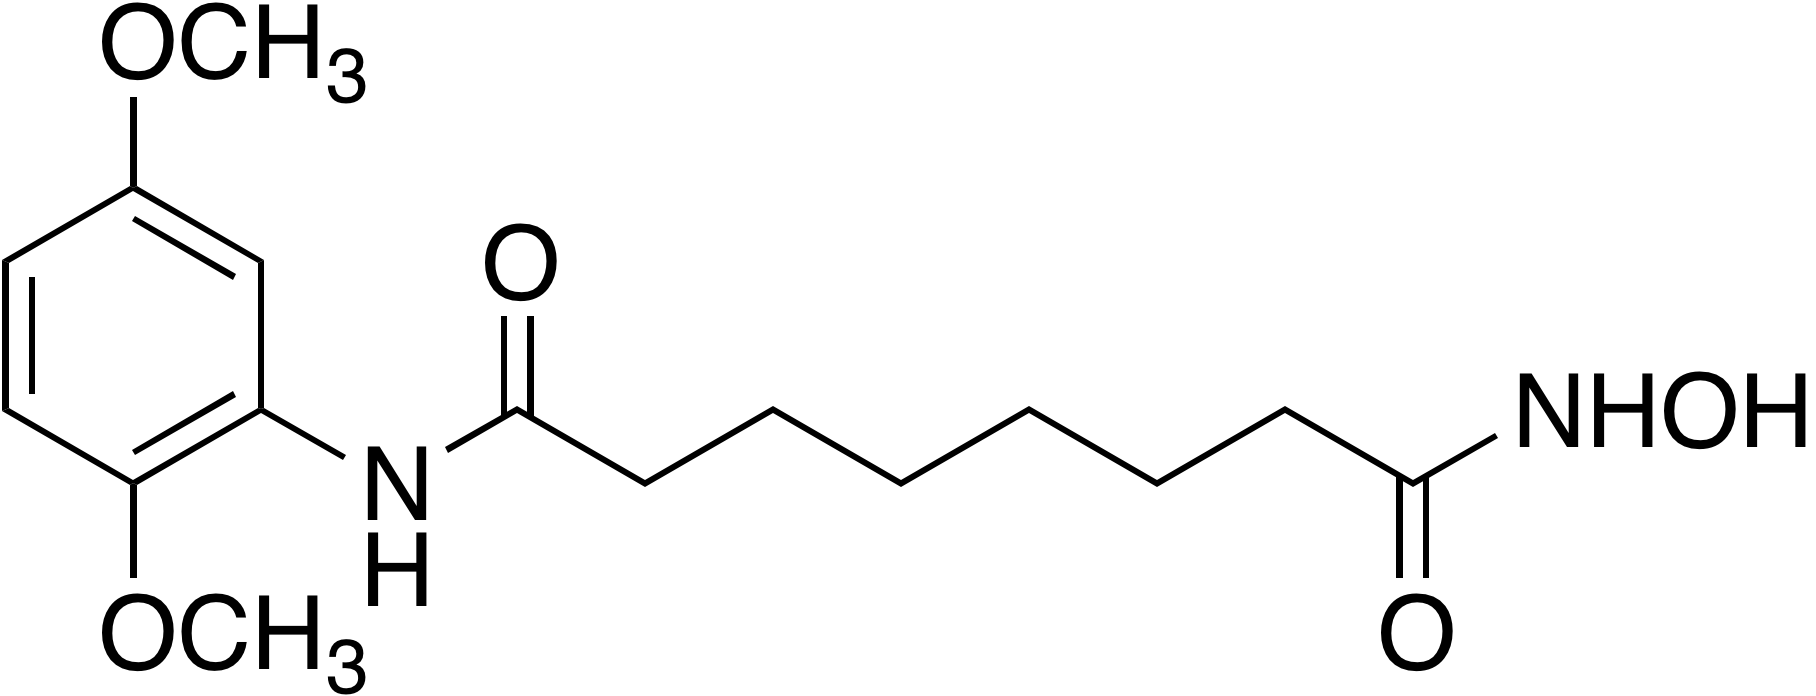 N-(2,5-Dimethoxyphenyl)-N